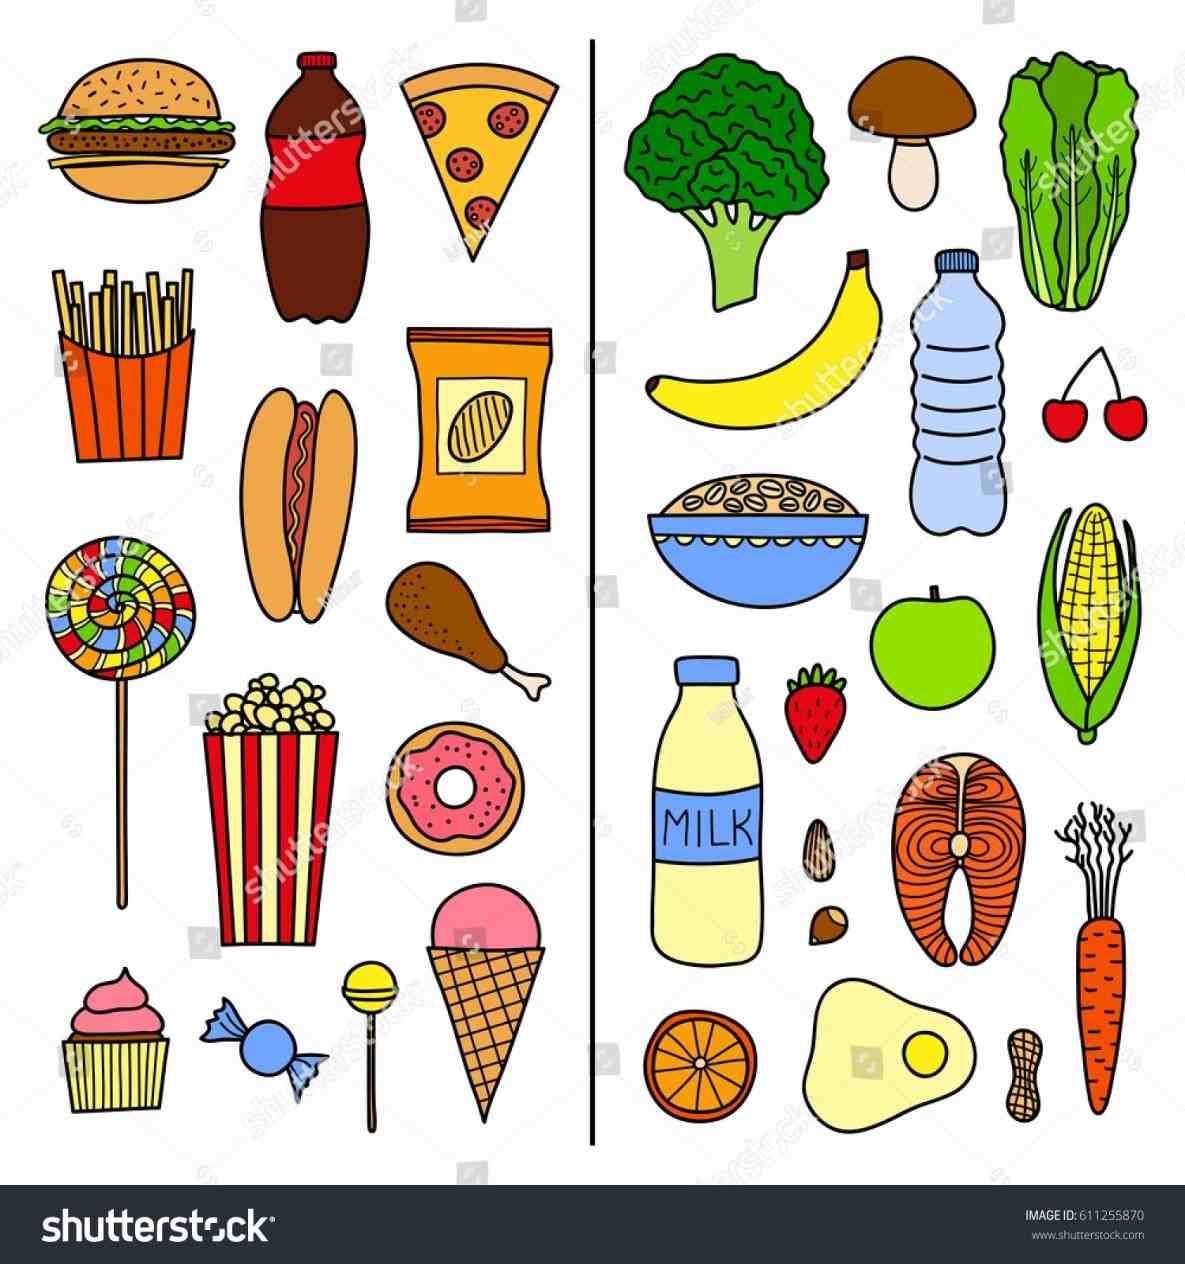 Food Clipart Unhealthy Pictures On Cliparts Pub